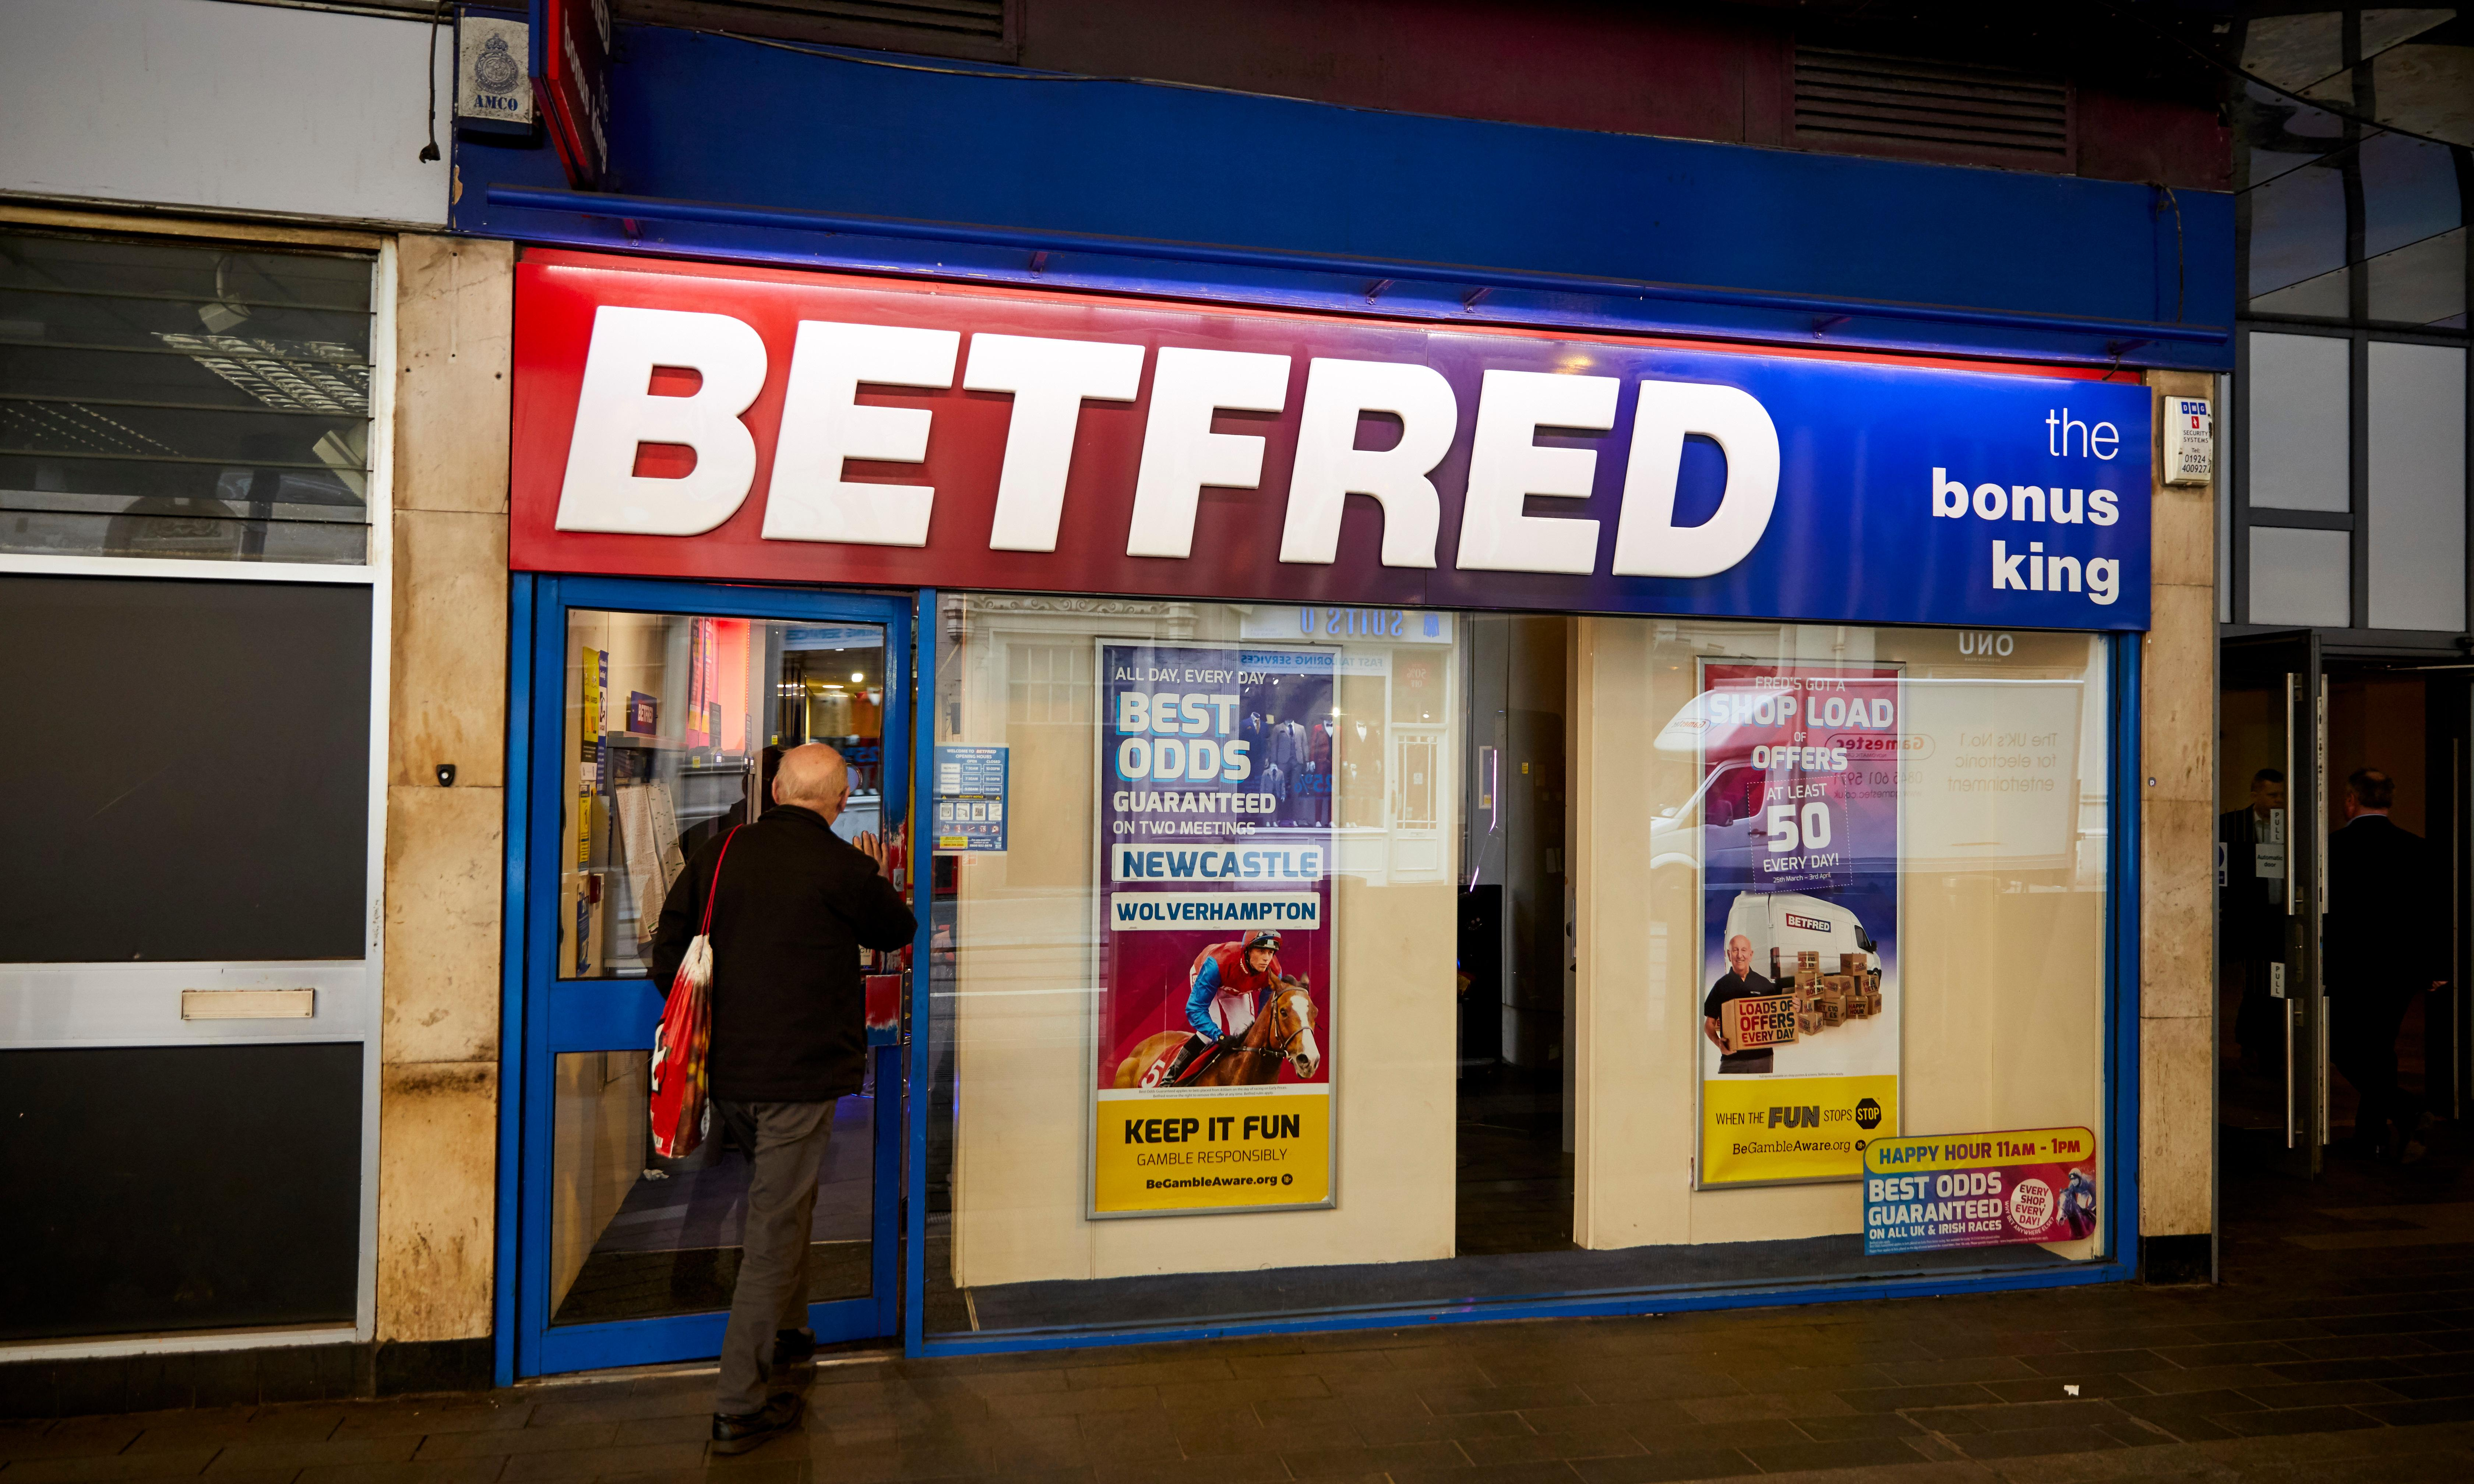 A mistake on a betting slip cost a punter £200k. How you react to that is telling